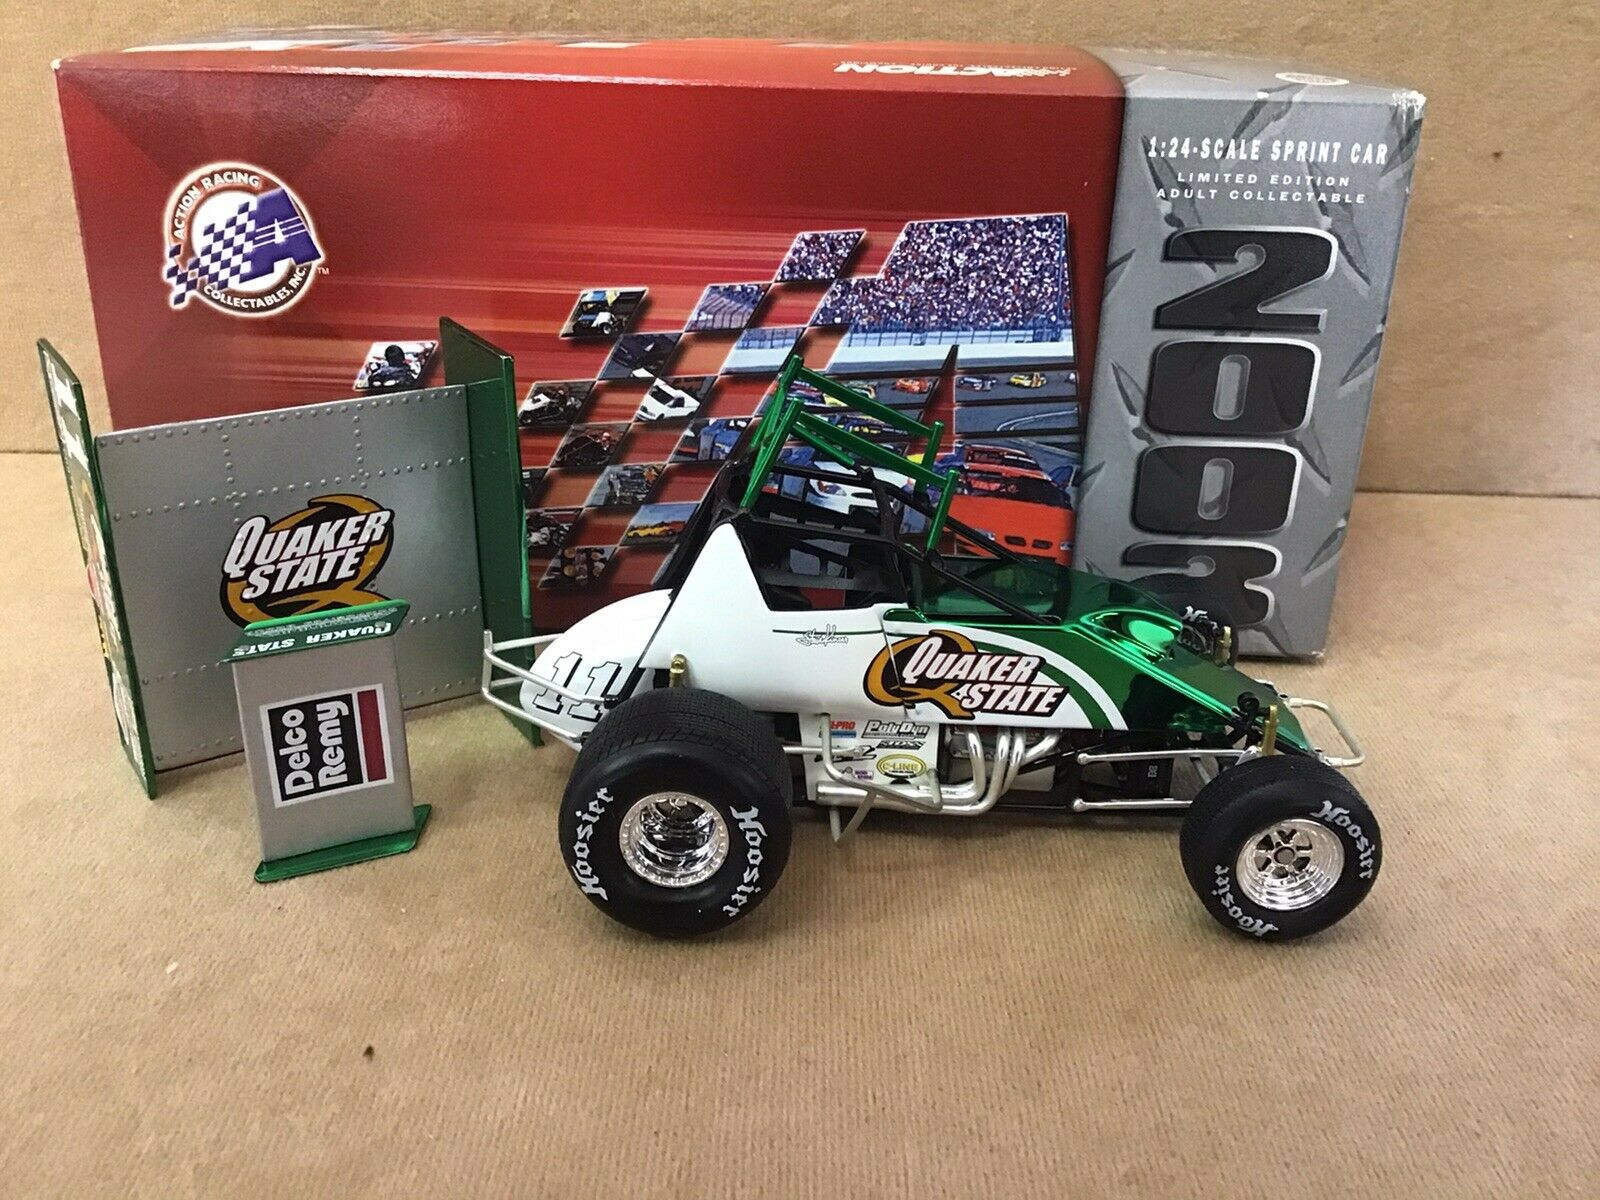 Steve Kinser Quaker State 2003 17X Champion 1 24 Scale Action